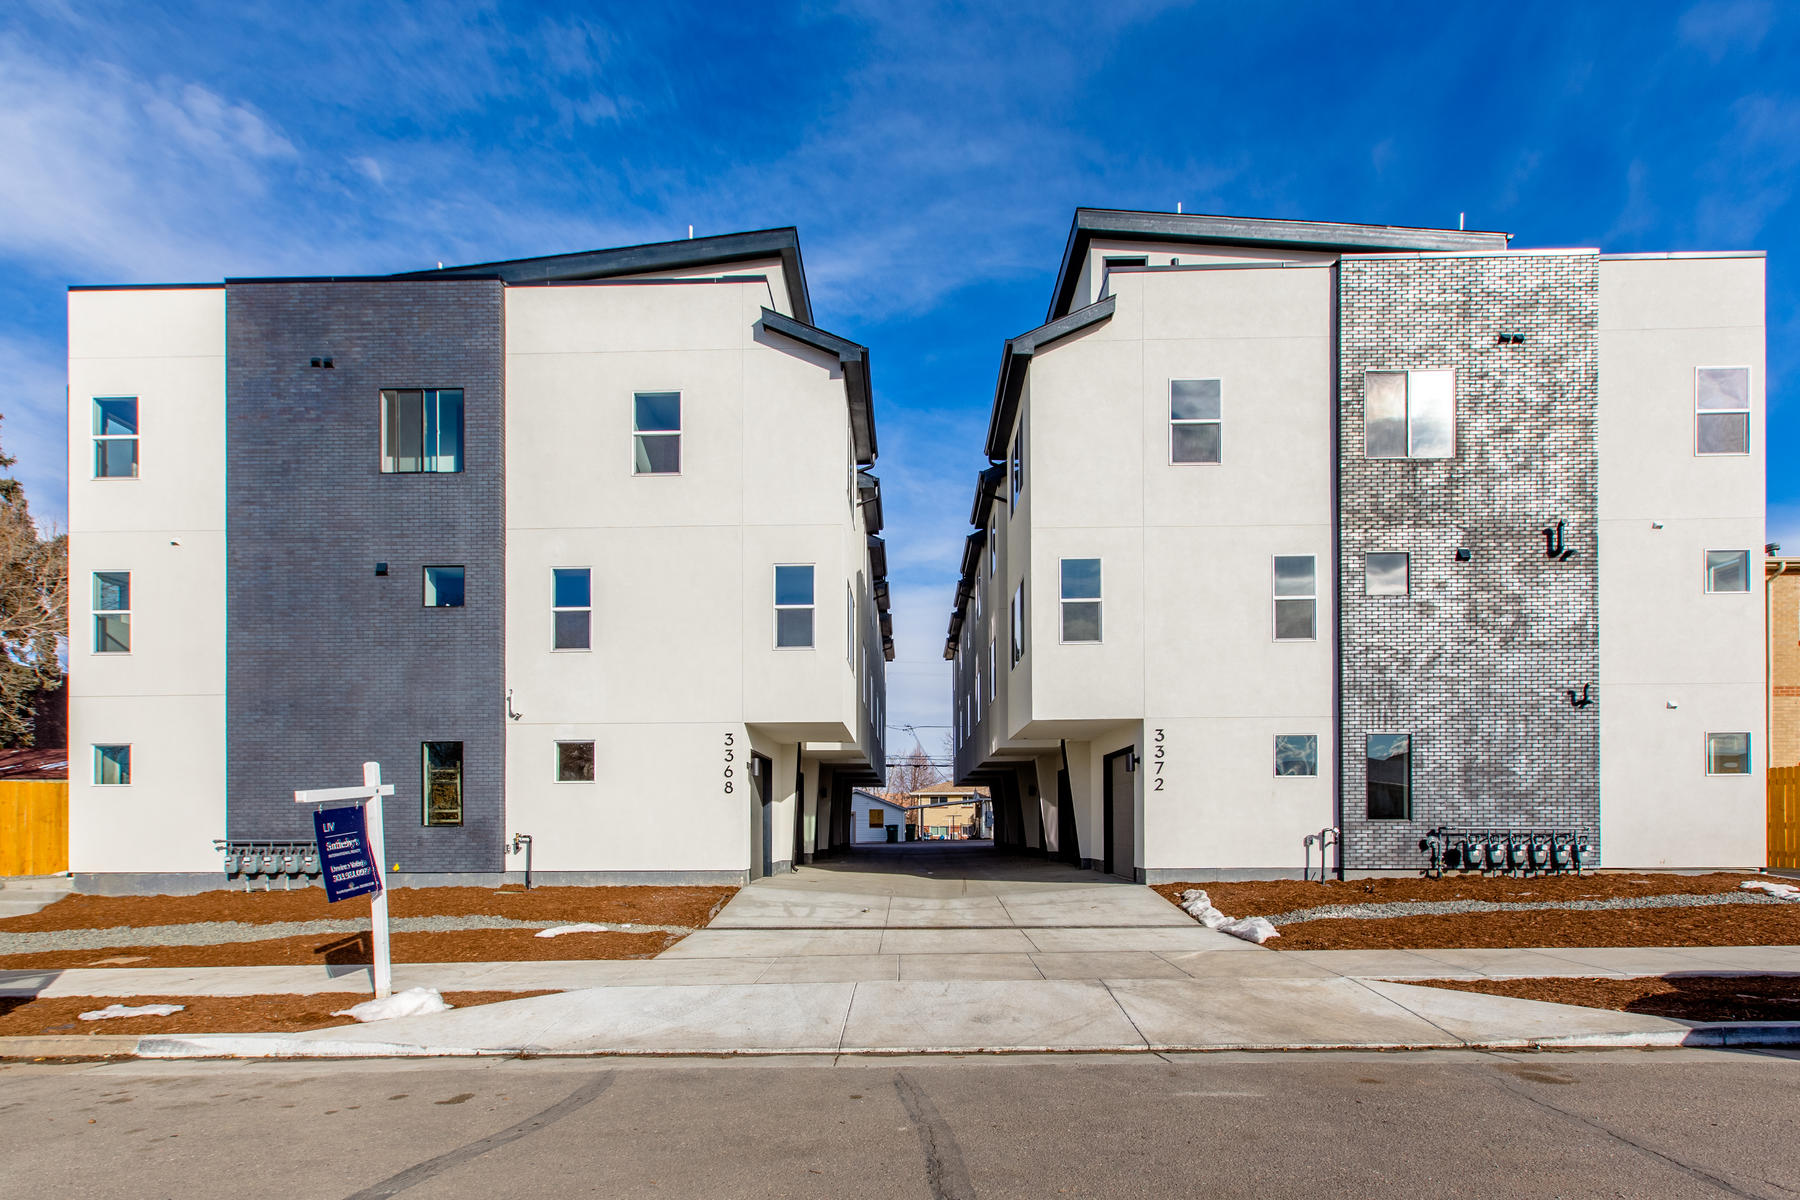 townhouses のために 売買 アット New Townhomes in SoBo! 3368 S Pearl Street Unit #D Englewood, コロラド 80113 アメリカ